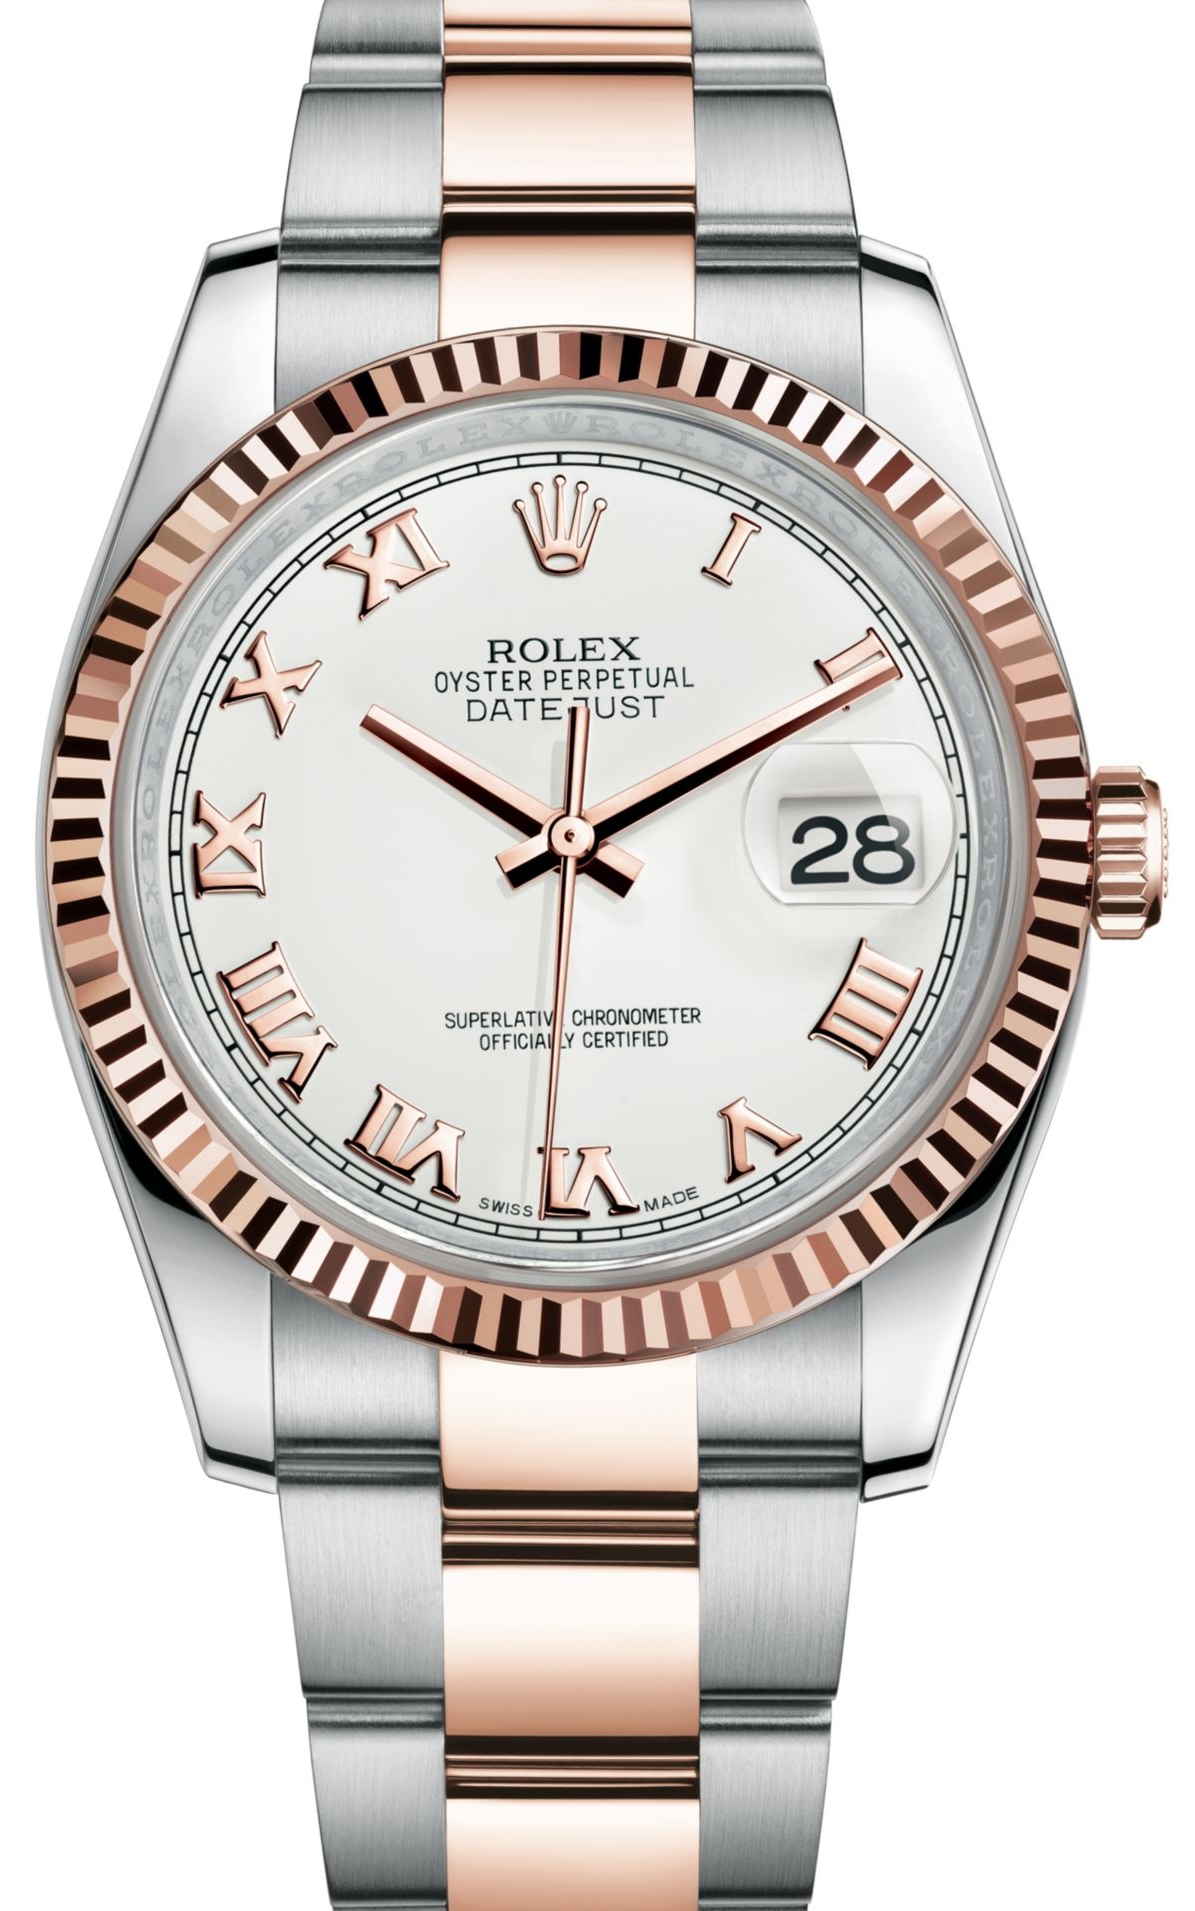 The Rolex Watch